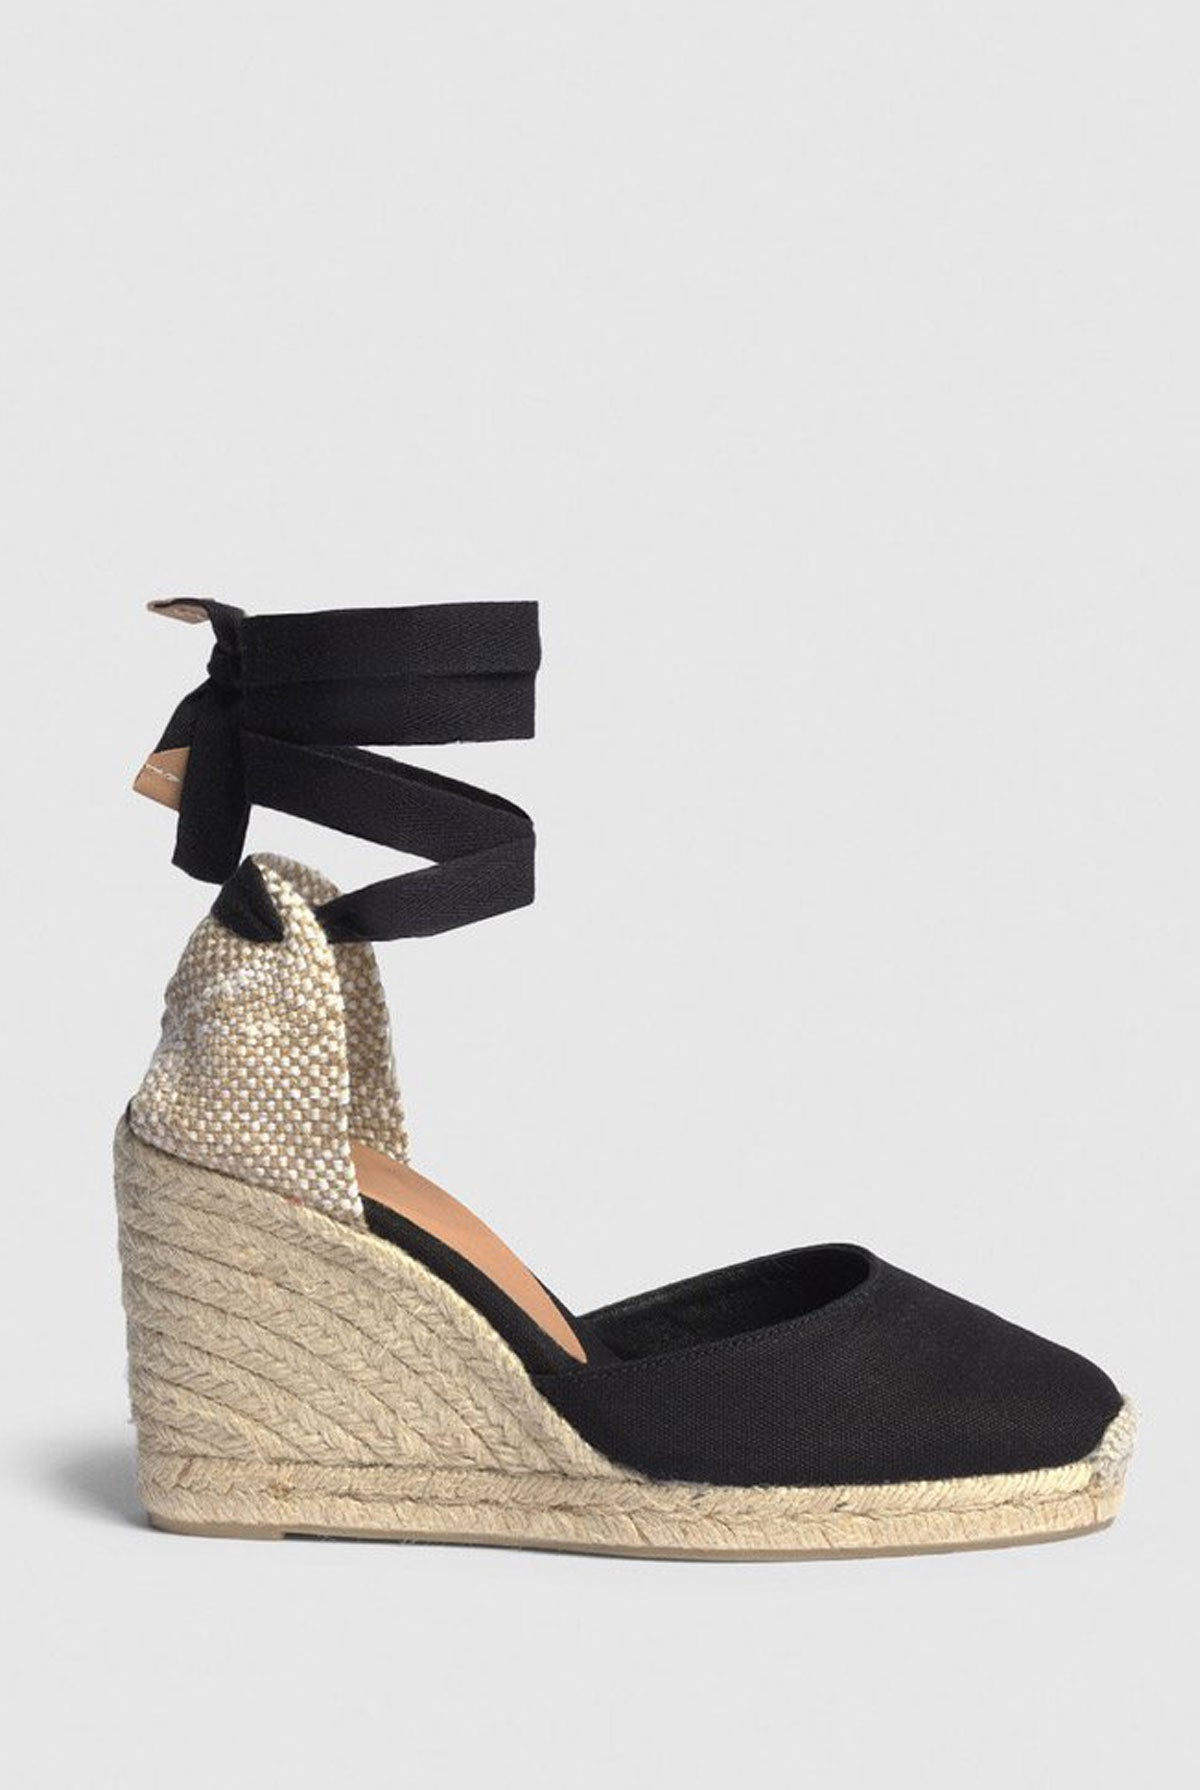 Castañer Espadrille with wedge Carina made in canvas 9cm - Black - EU36 Black